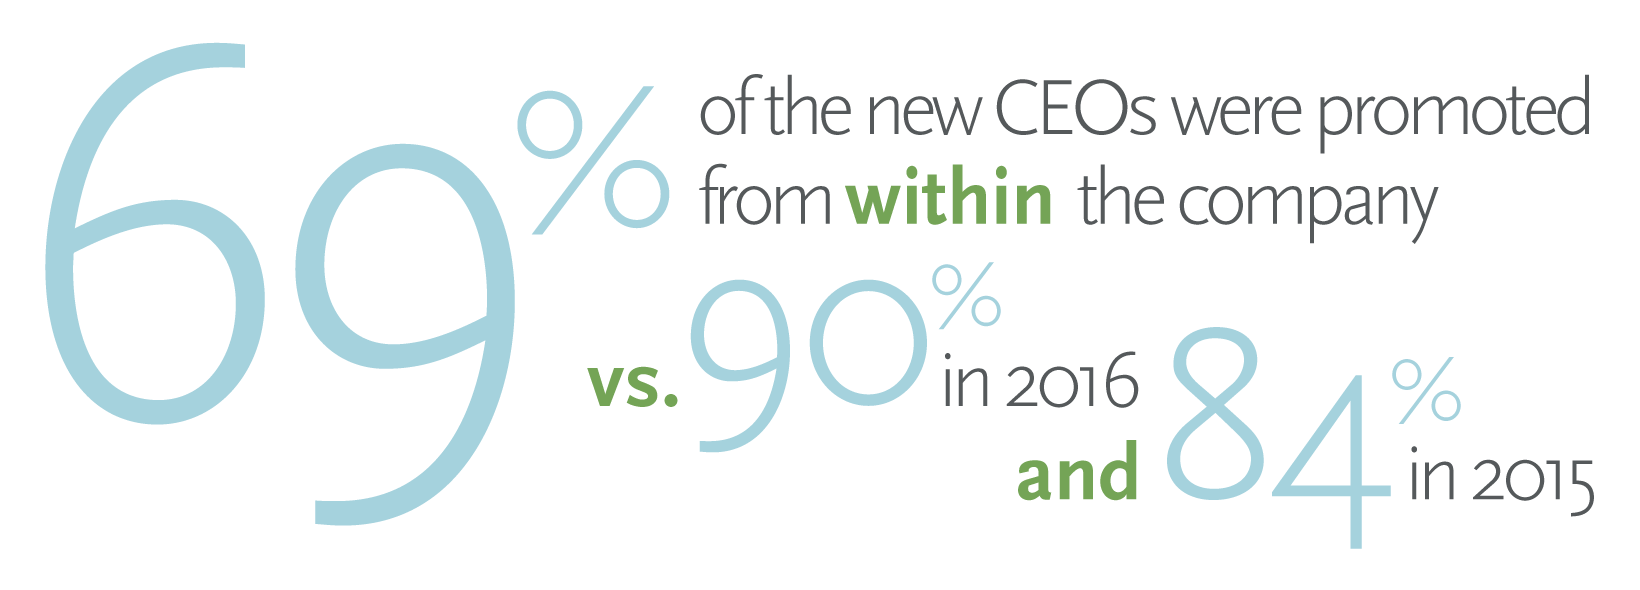 sixty nine percent of the new ceos were promoted from within the company compared with 90 in 2016 and 84 in 2015